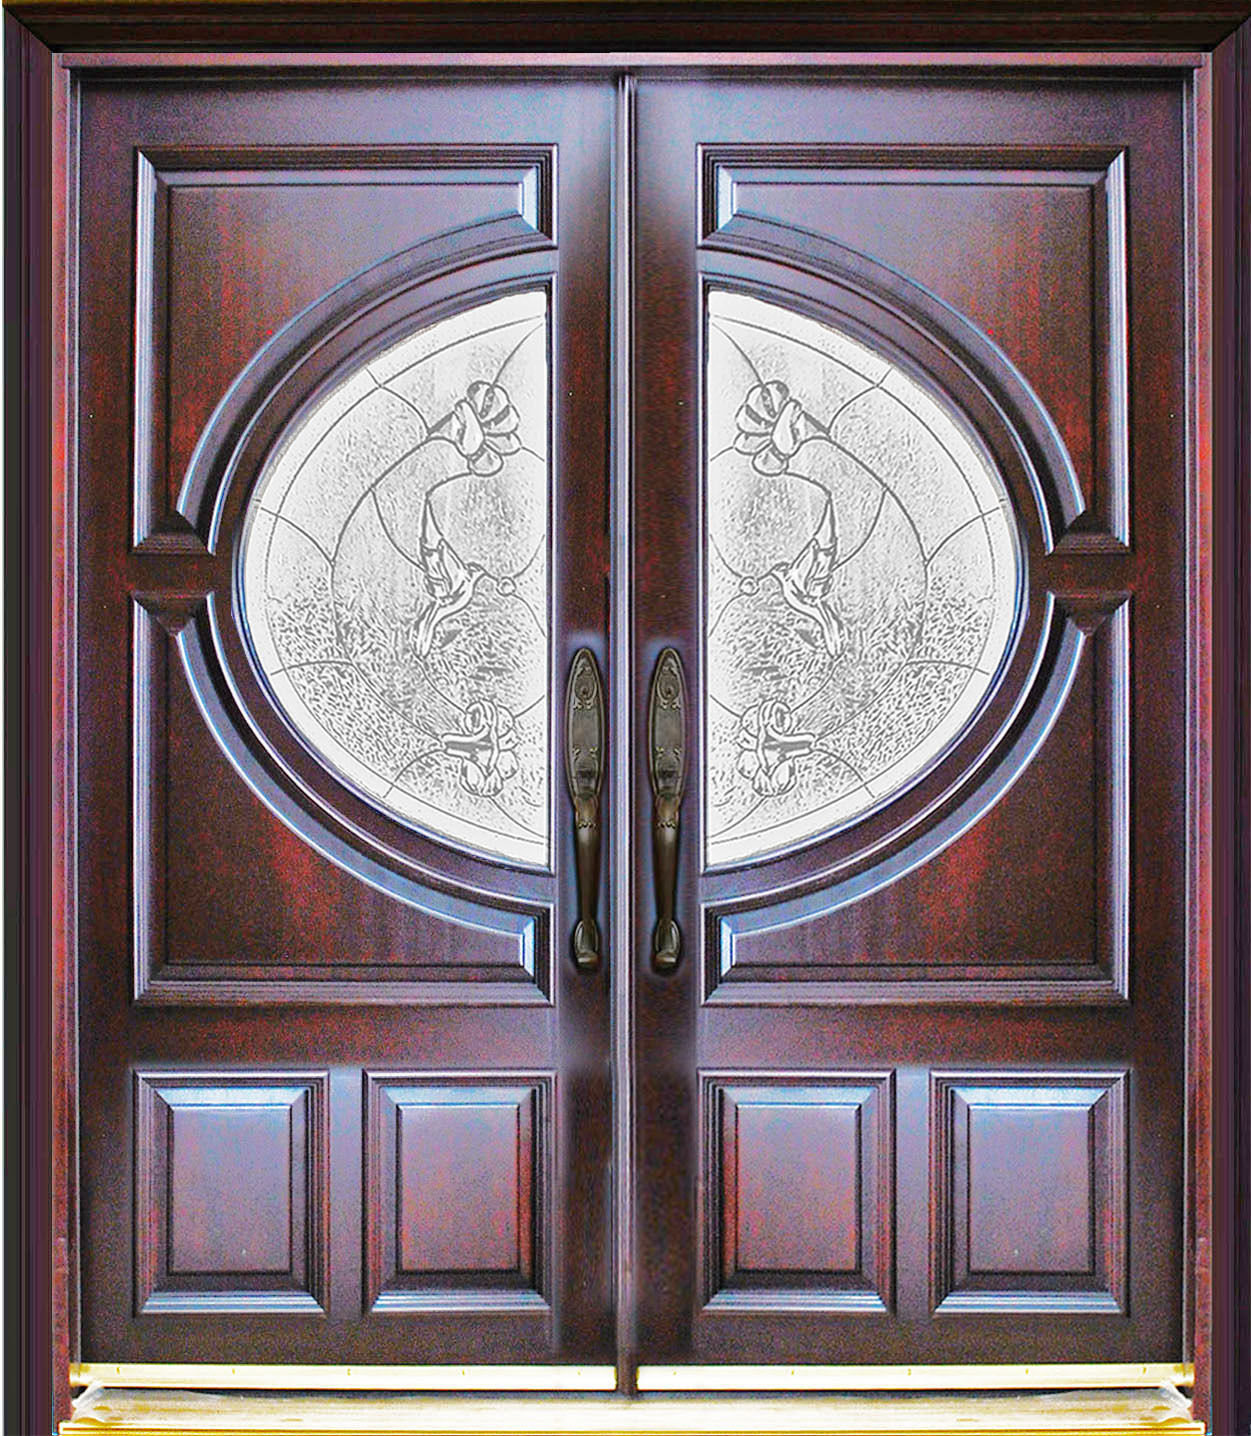 Mahogany double exterior front entry wood door 580a 30 x80 for Exterior wood entry doors